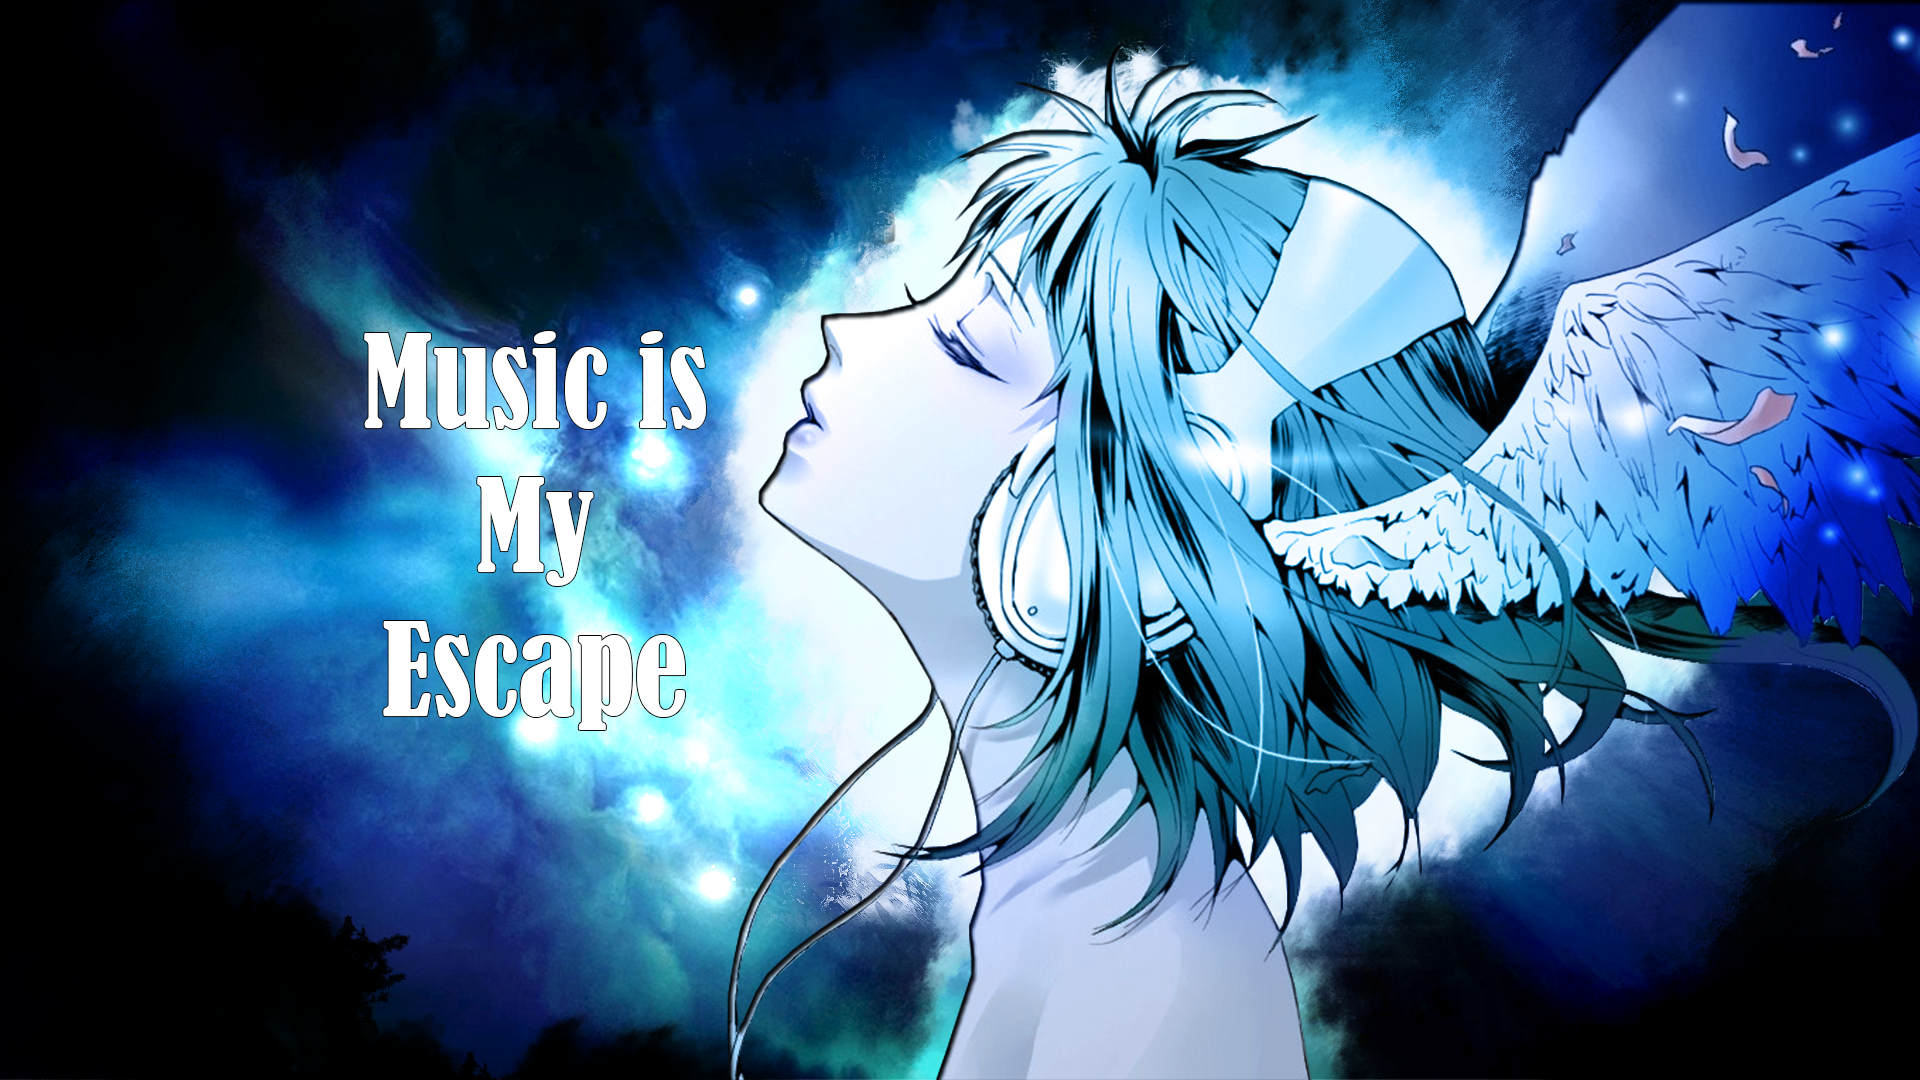 Music Is My Escape Hd Wallpaper Background Image 1920x1080 Id